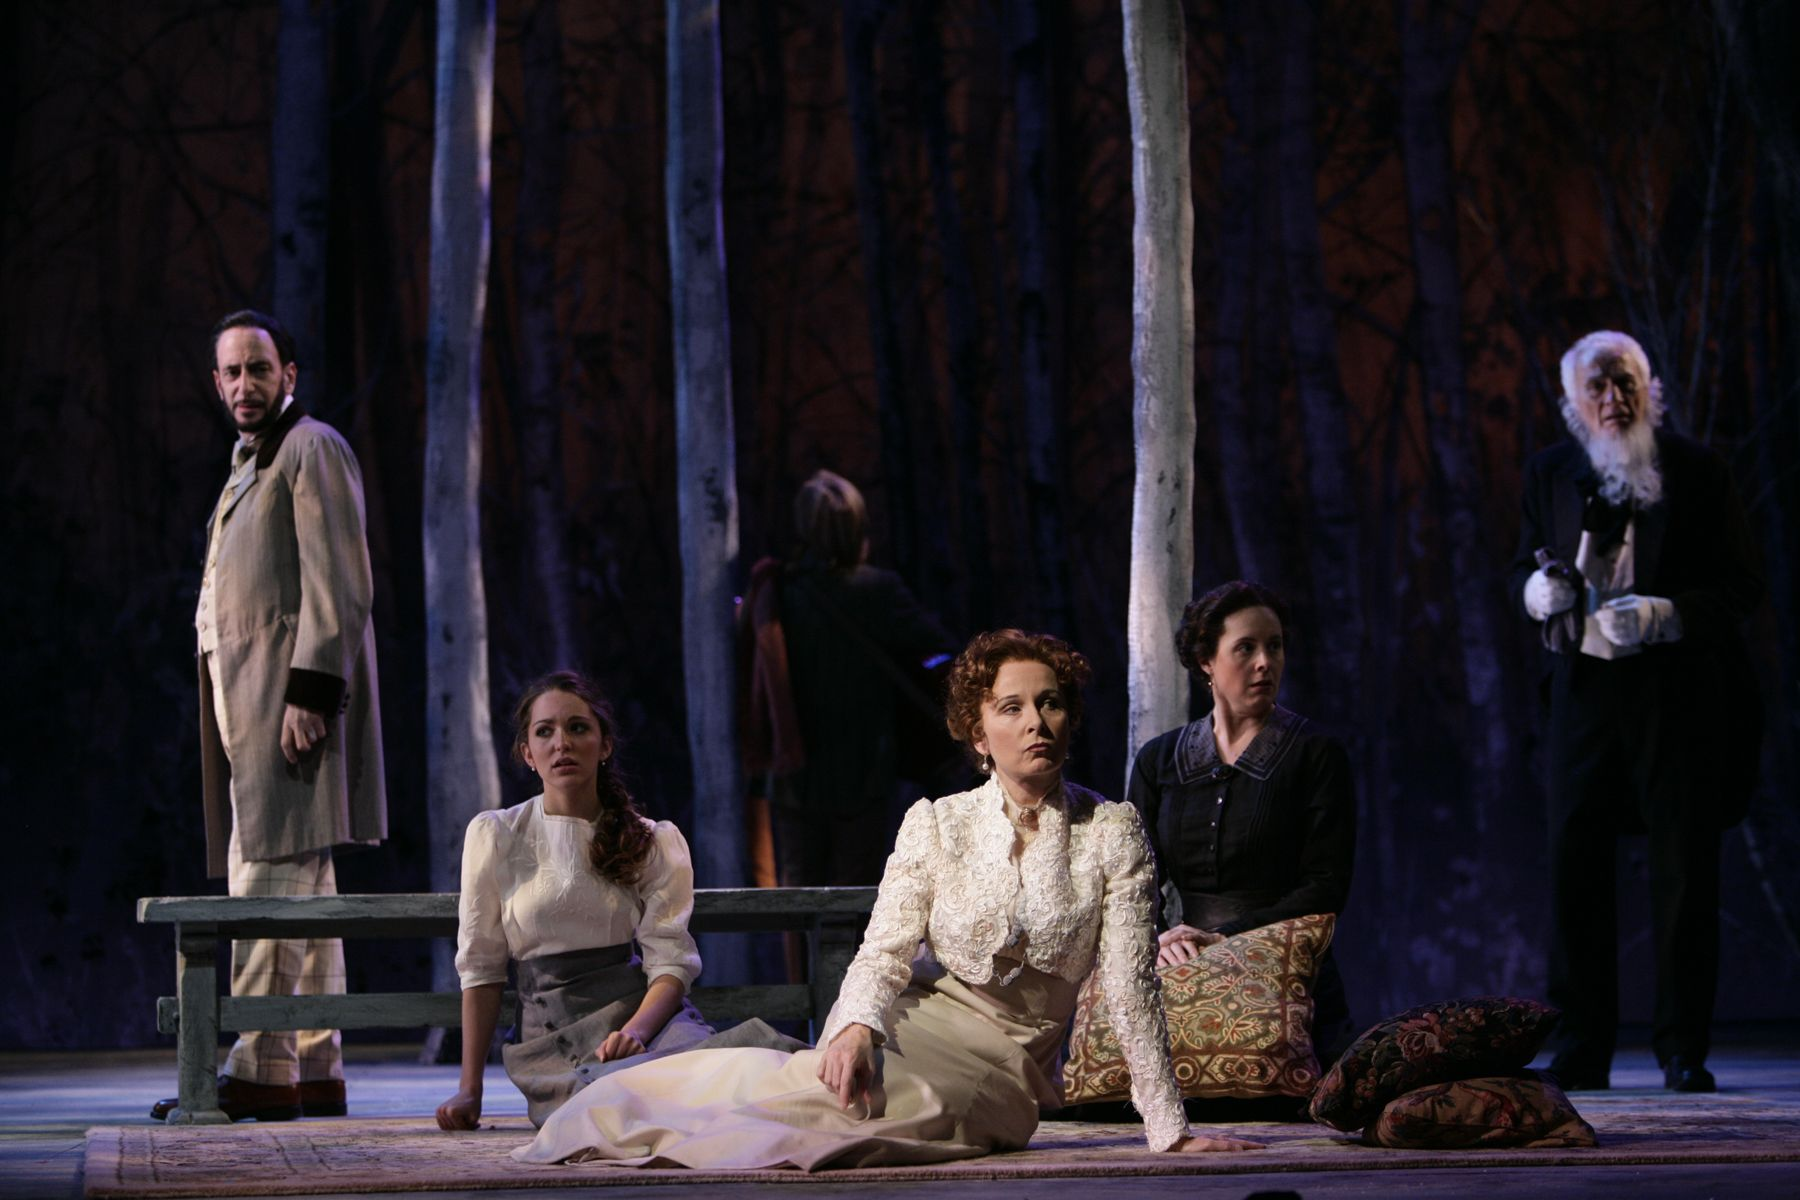 a review of anton chekhovs play the cherry orchard Anton chekhov's play the cherry orchard introduces readers to a pre-revolution  s cherry orchard (a critical analysis by qaisar iqbal janjua.